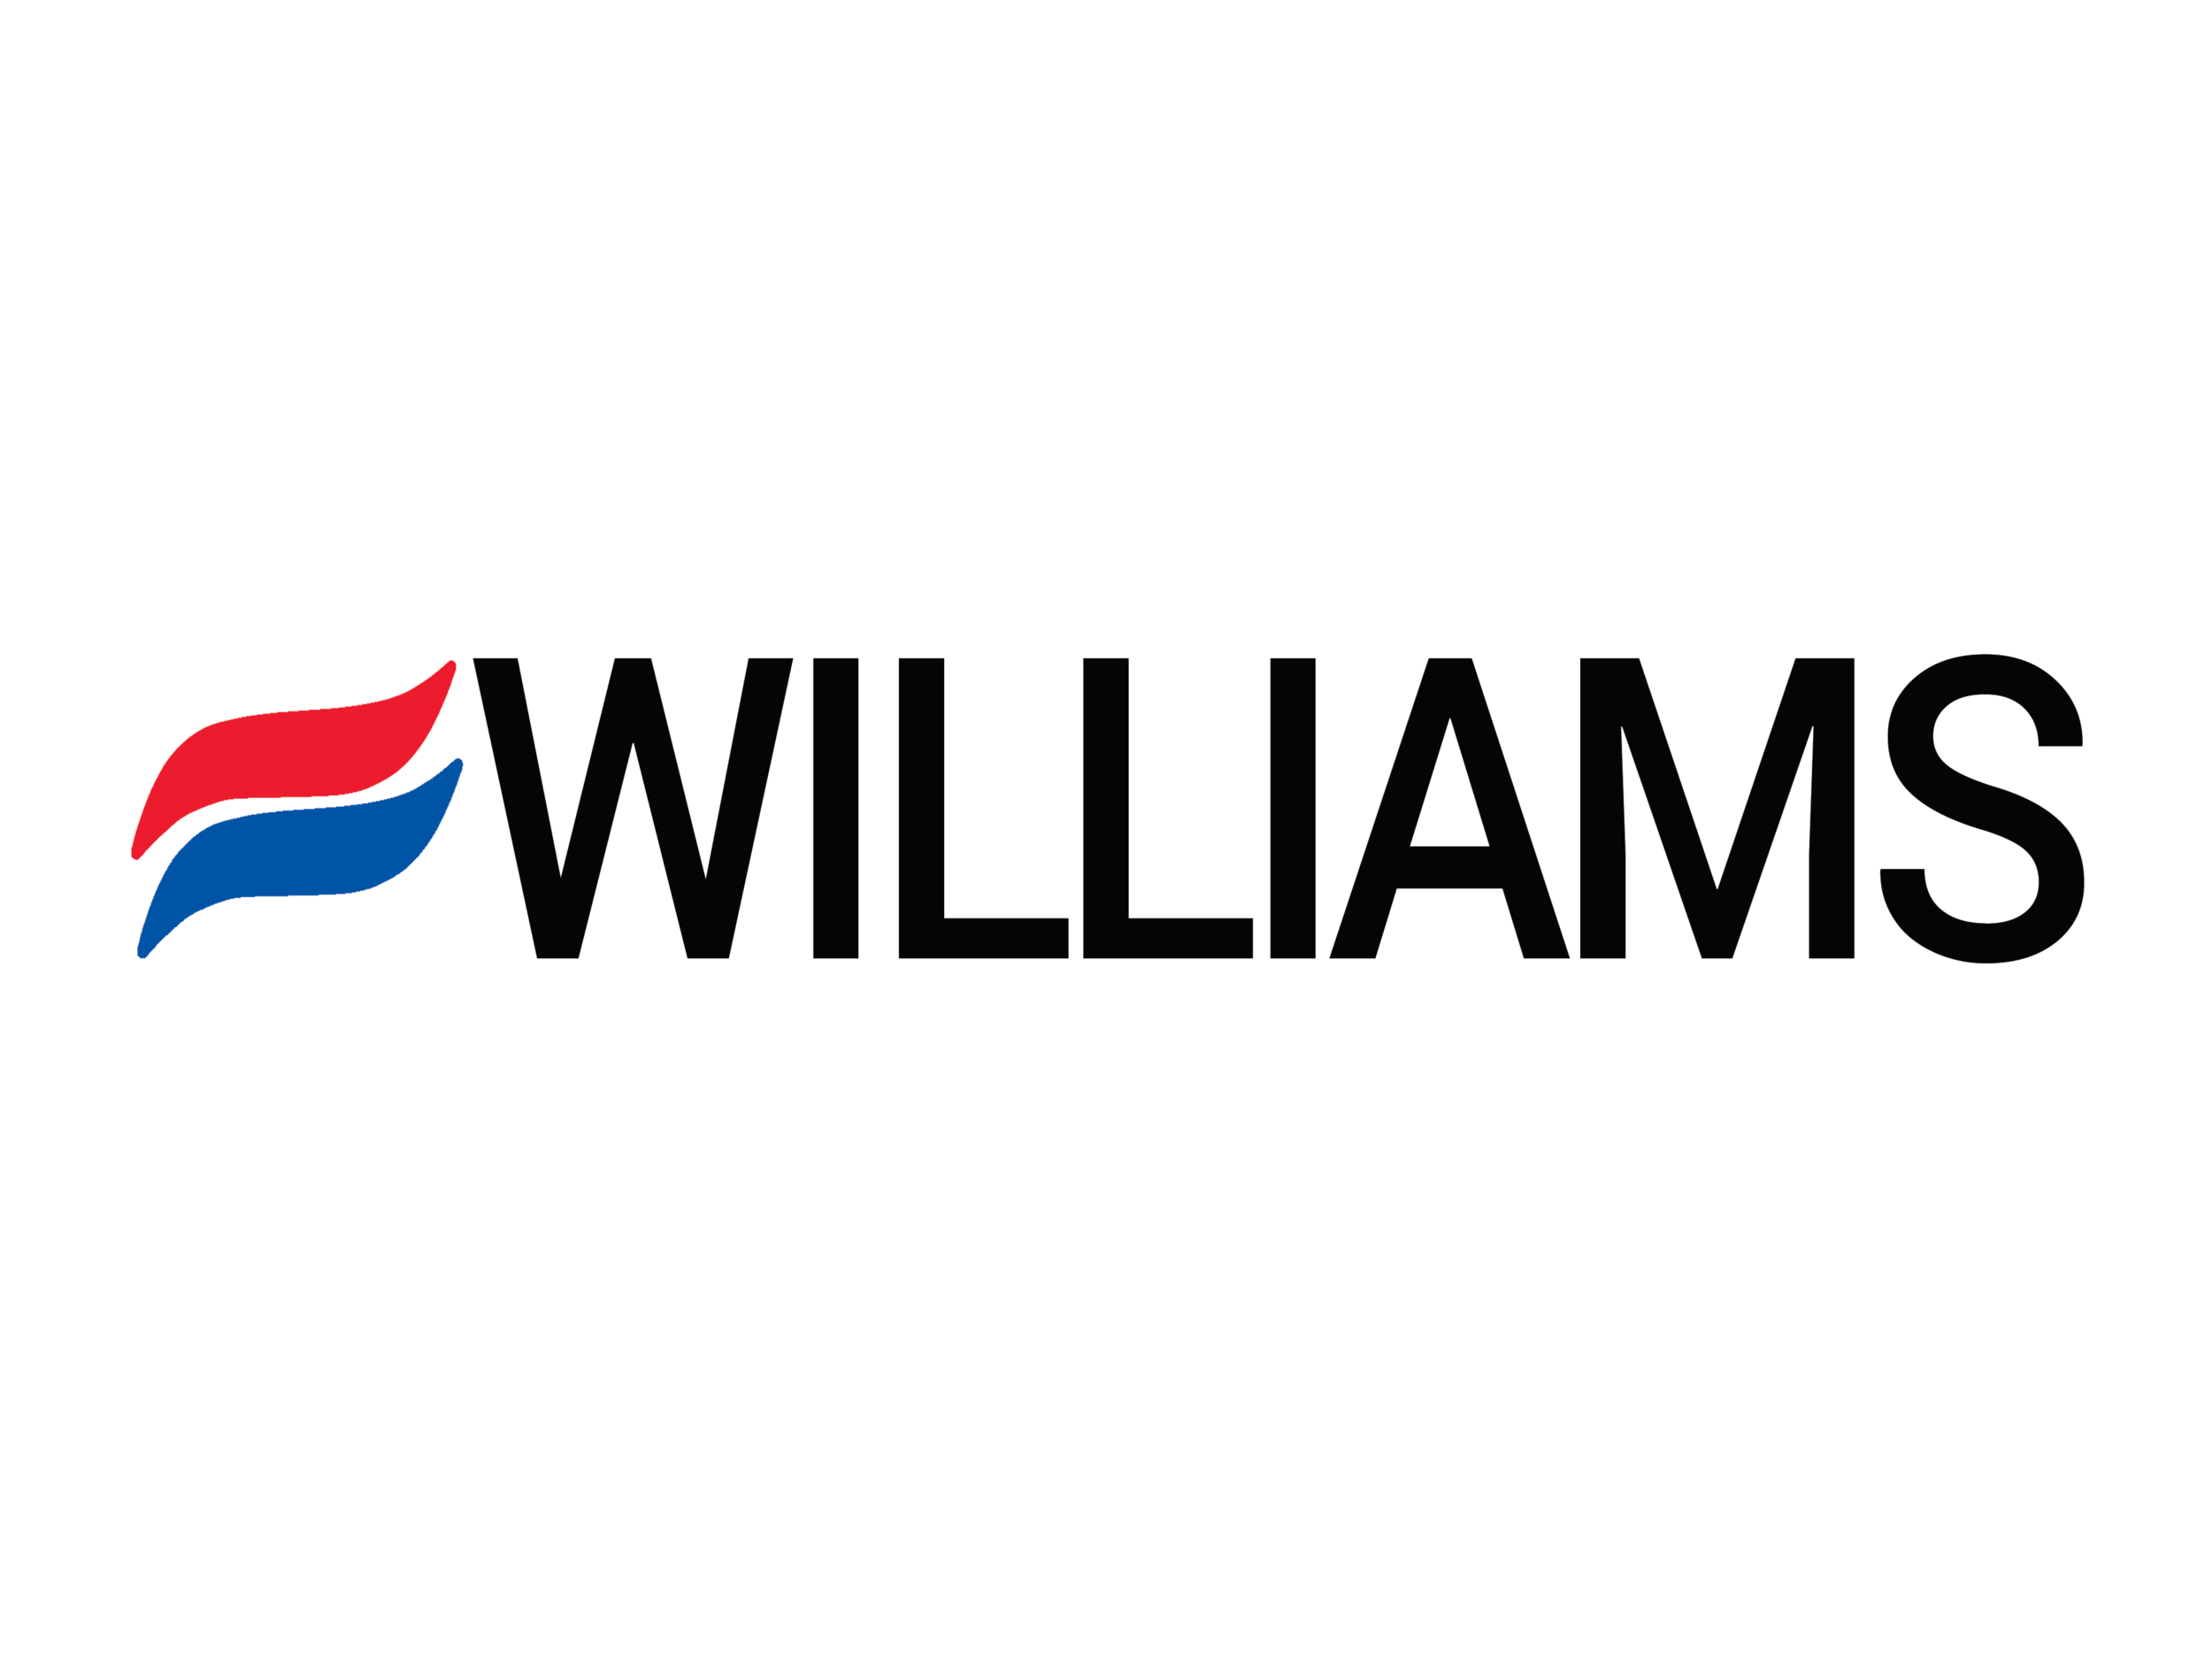 WILLIAMS COMFORT PRODUCTS 2018.png